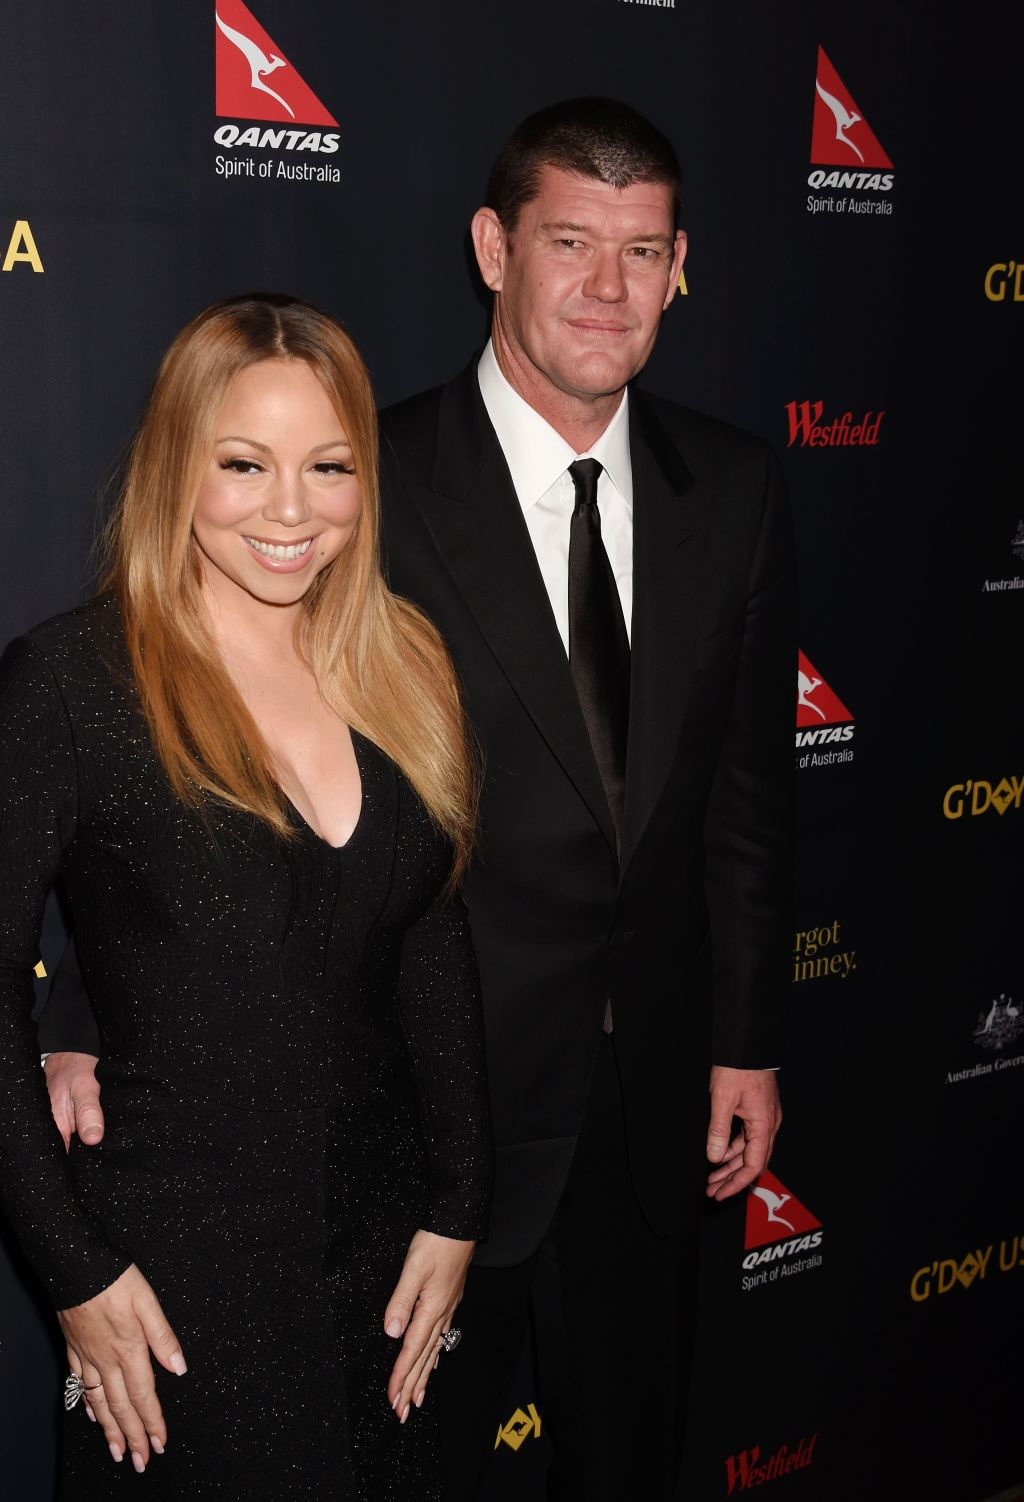 Mariah Carey On 18-Month Relationship With Ex-Fiancé James Packer: 'It Didn't Occur'